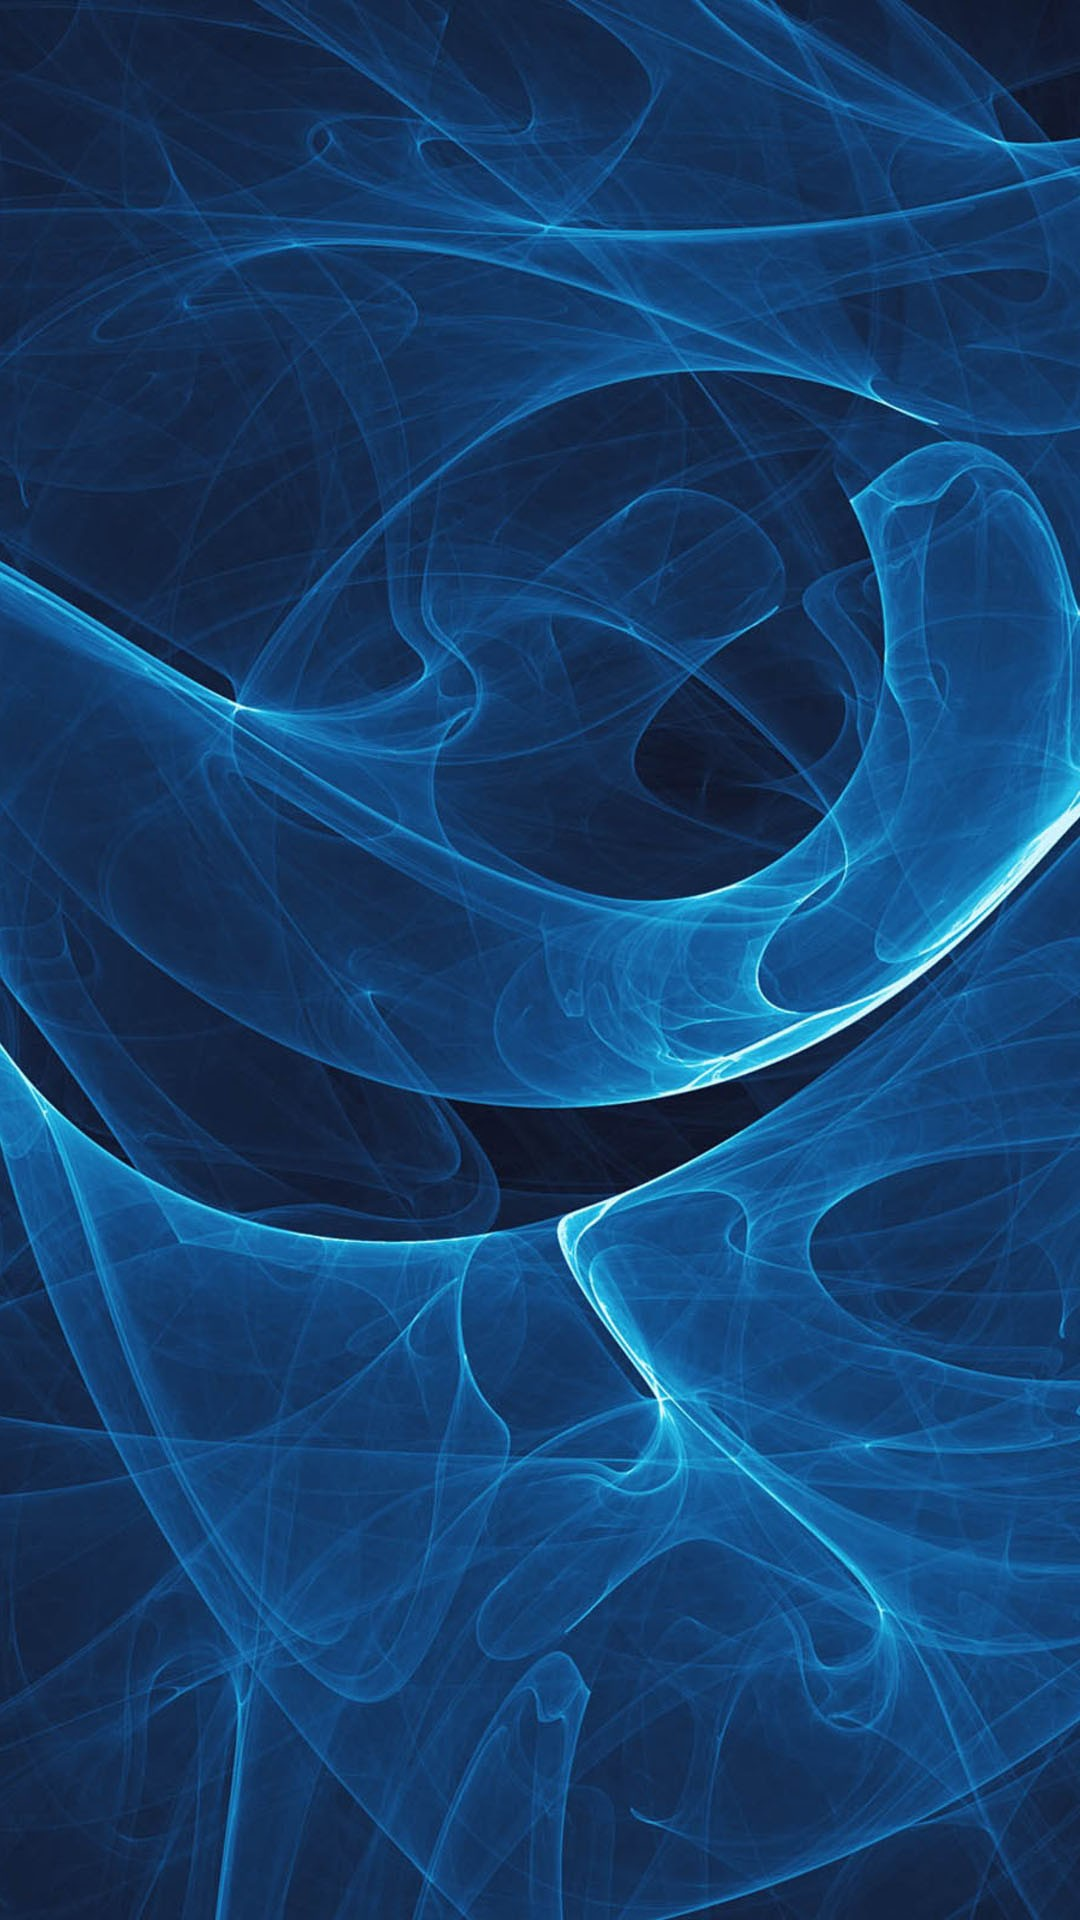 Smartphone Wallpaper Cool Pattern Blue And Black 90323 Hd Wallpaper Backgrounds Download